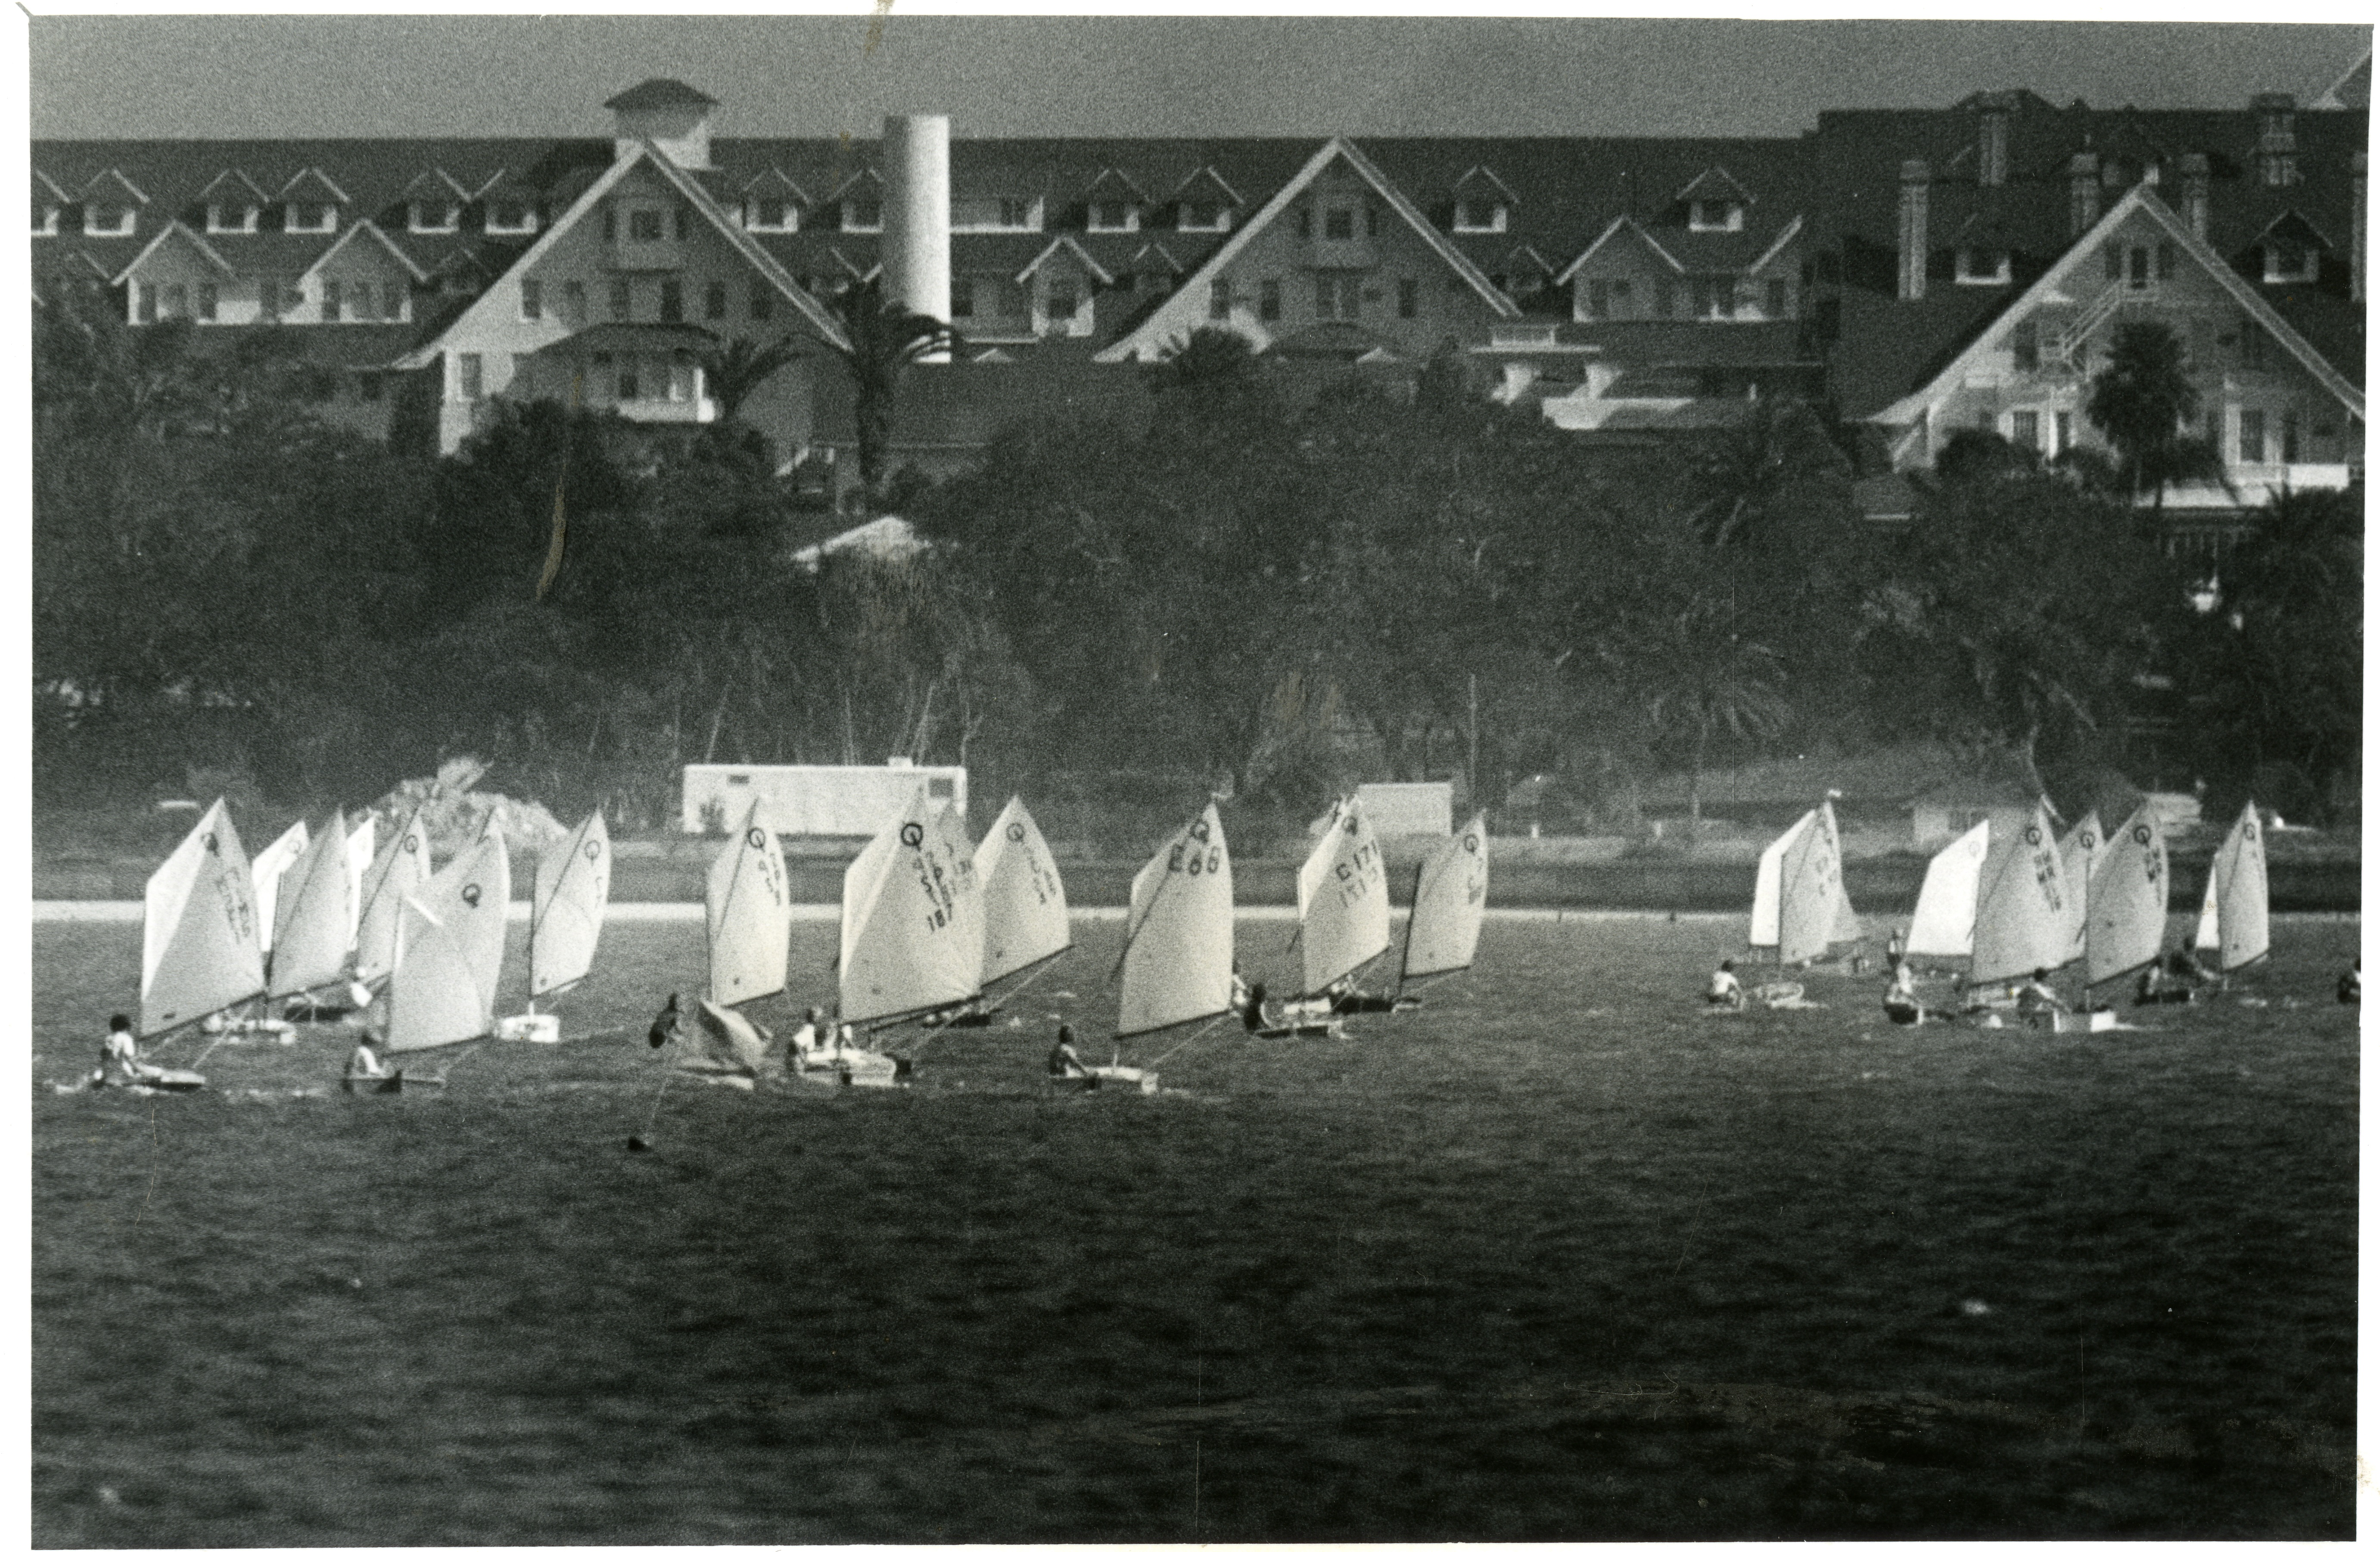 Clark Mills Youth Regatta with Belleview Biltmore in the background, Belleair, Florida, circa 1978.